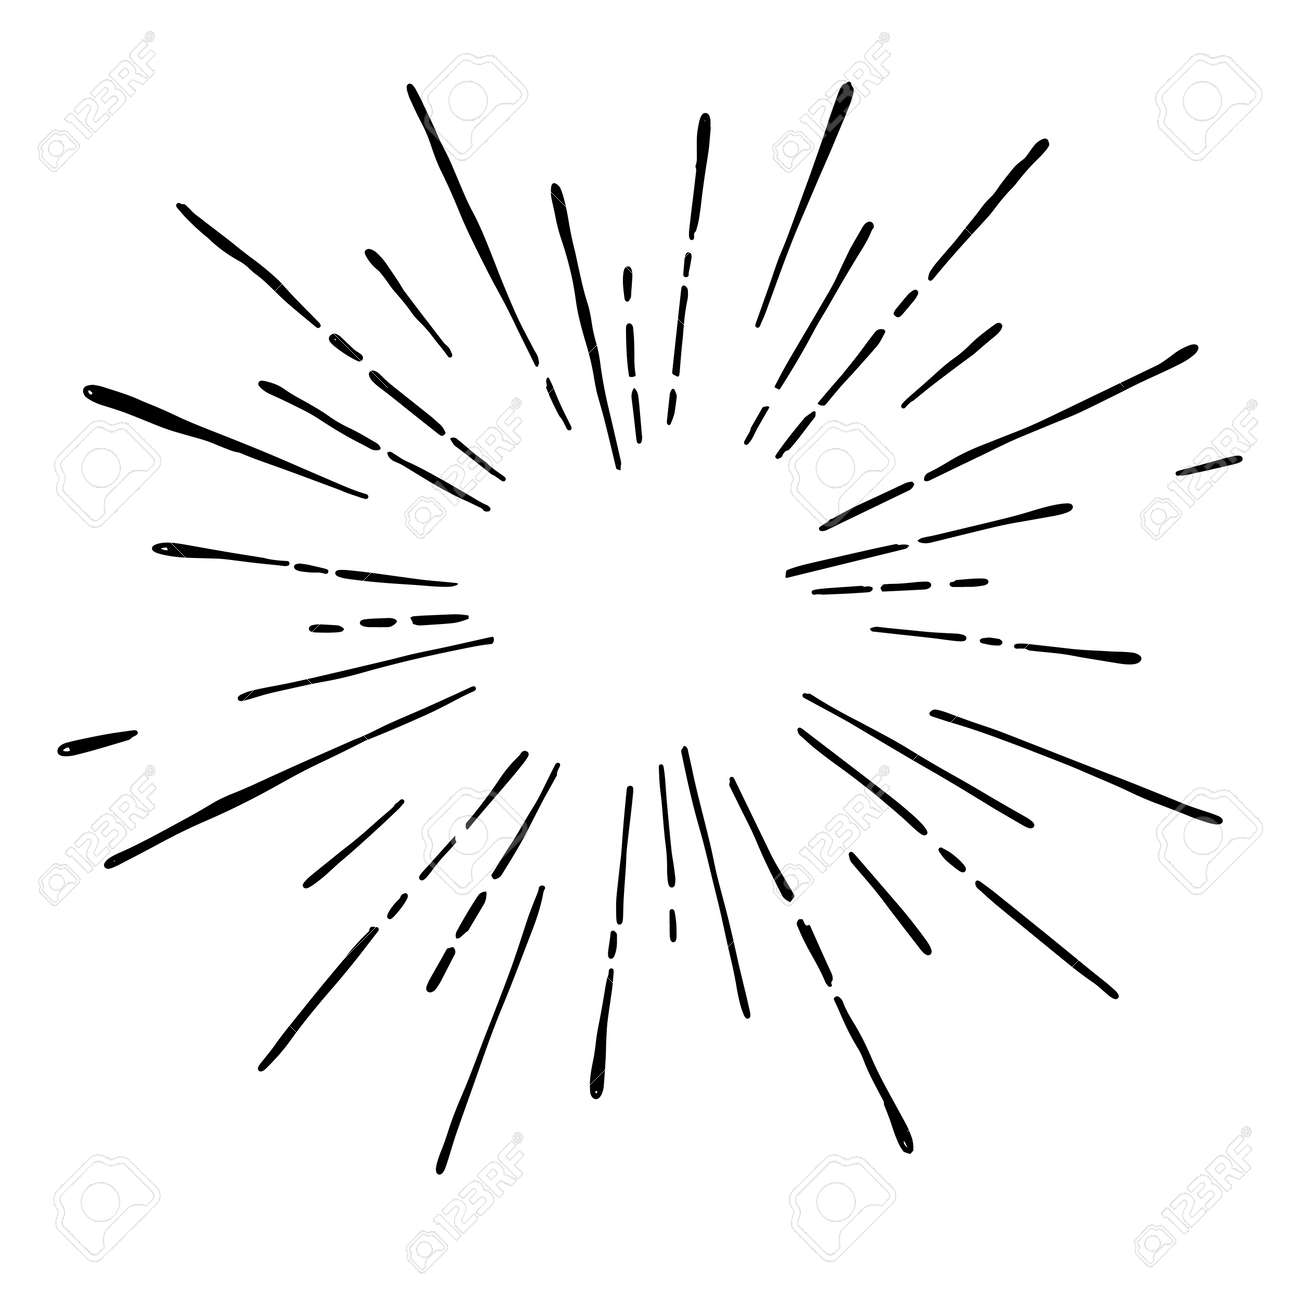 Sun burst, star burst sunshine. Radiating from the center of thin beams, lines. Design element for icon, signs. Dynamic style abstract explosion, speed motion lines from the middle. - 91704651